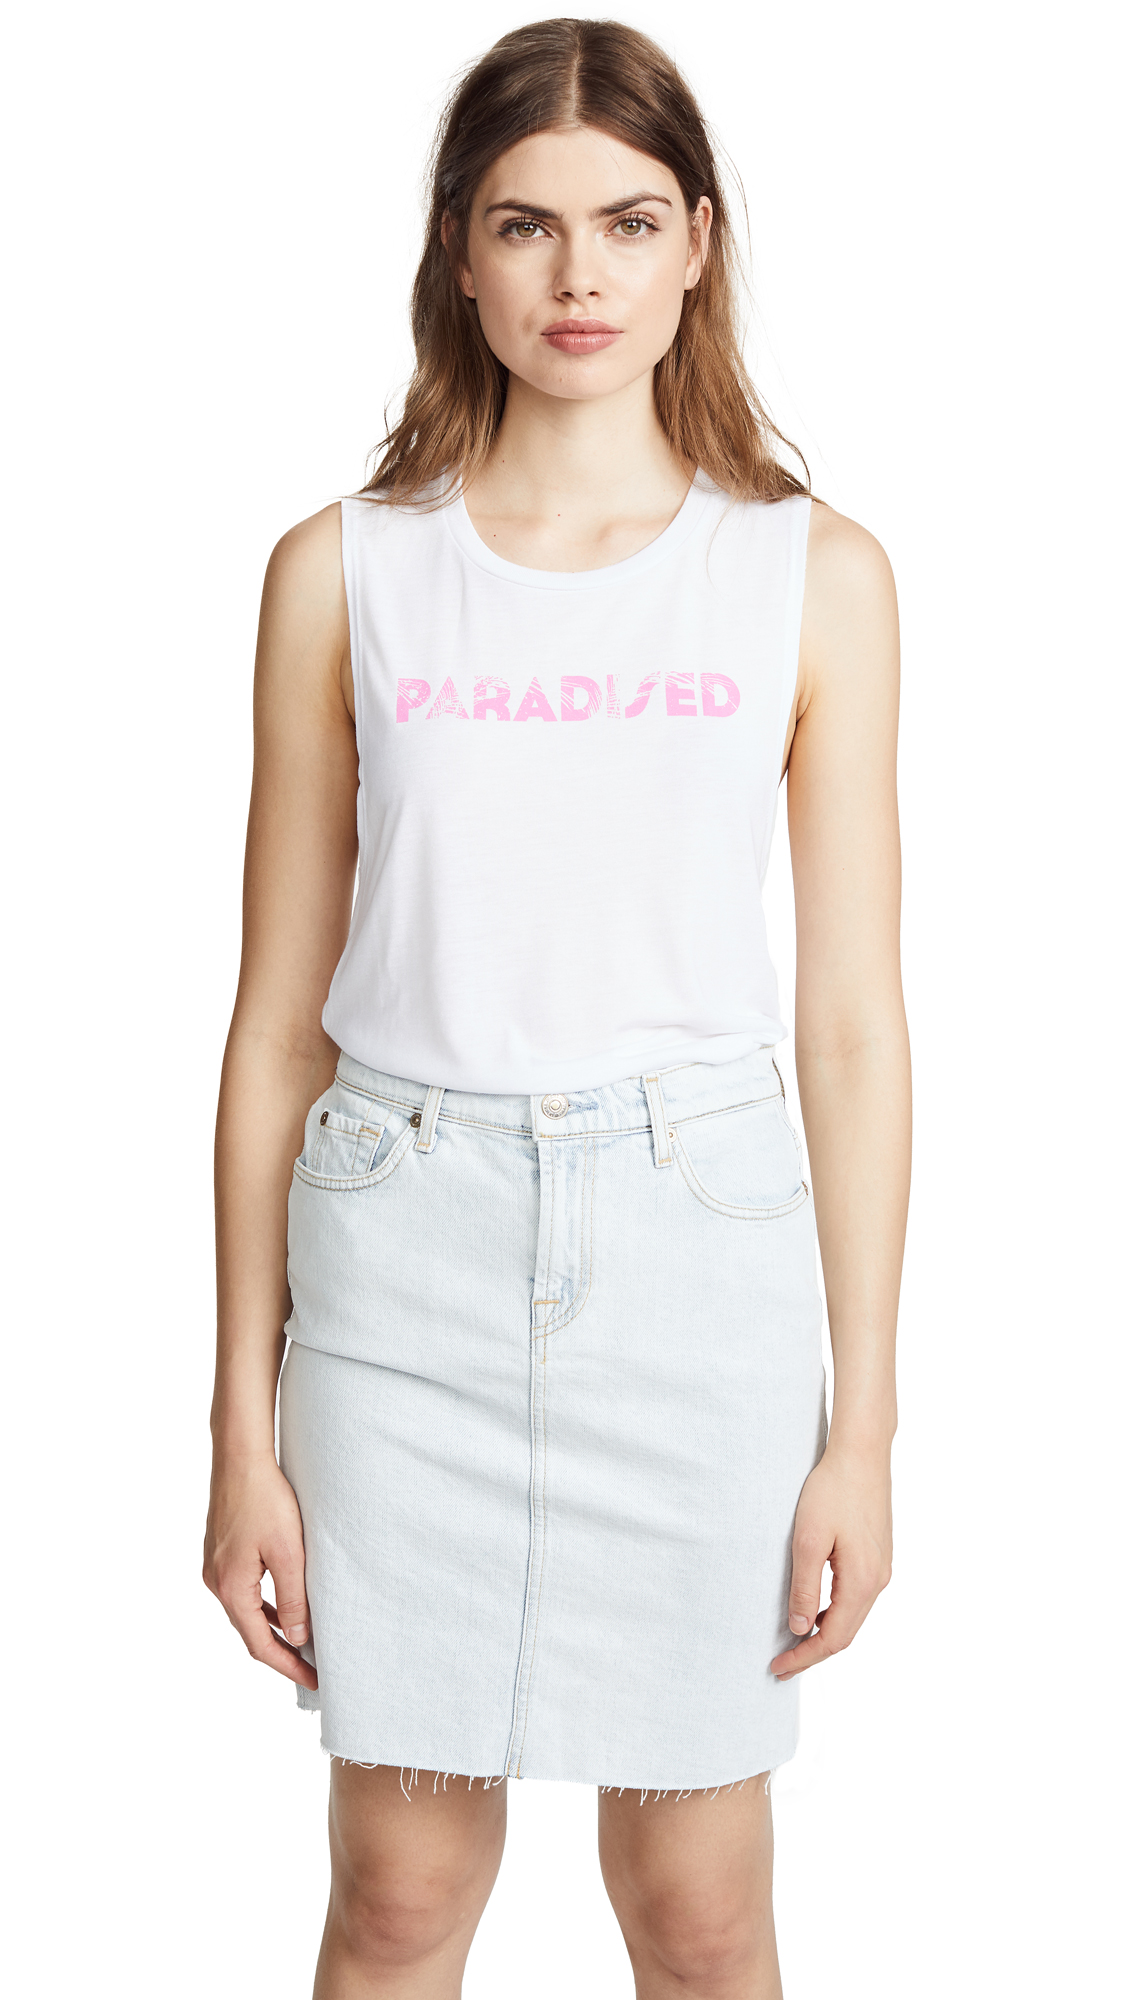 PARADISED Palm Tank Top in White/Pink